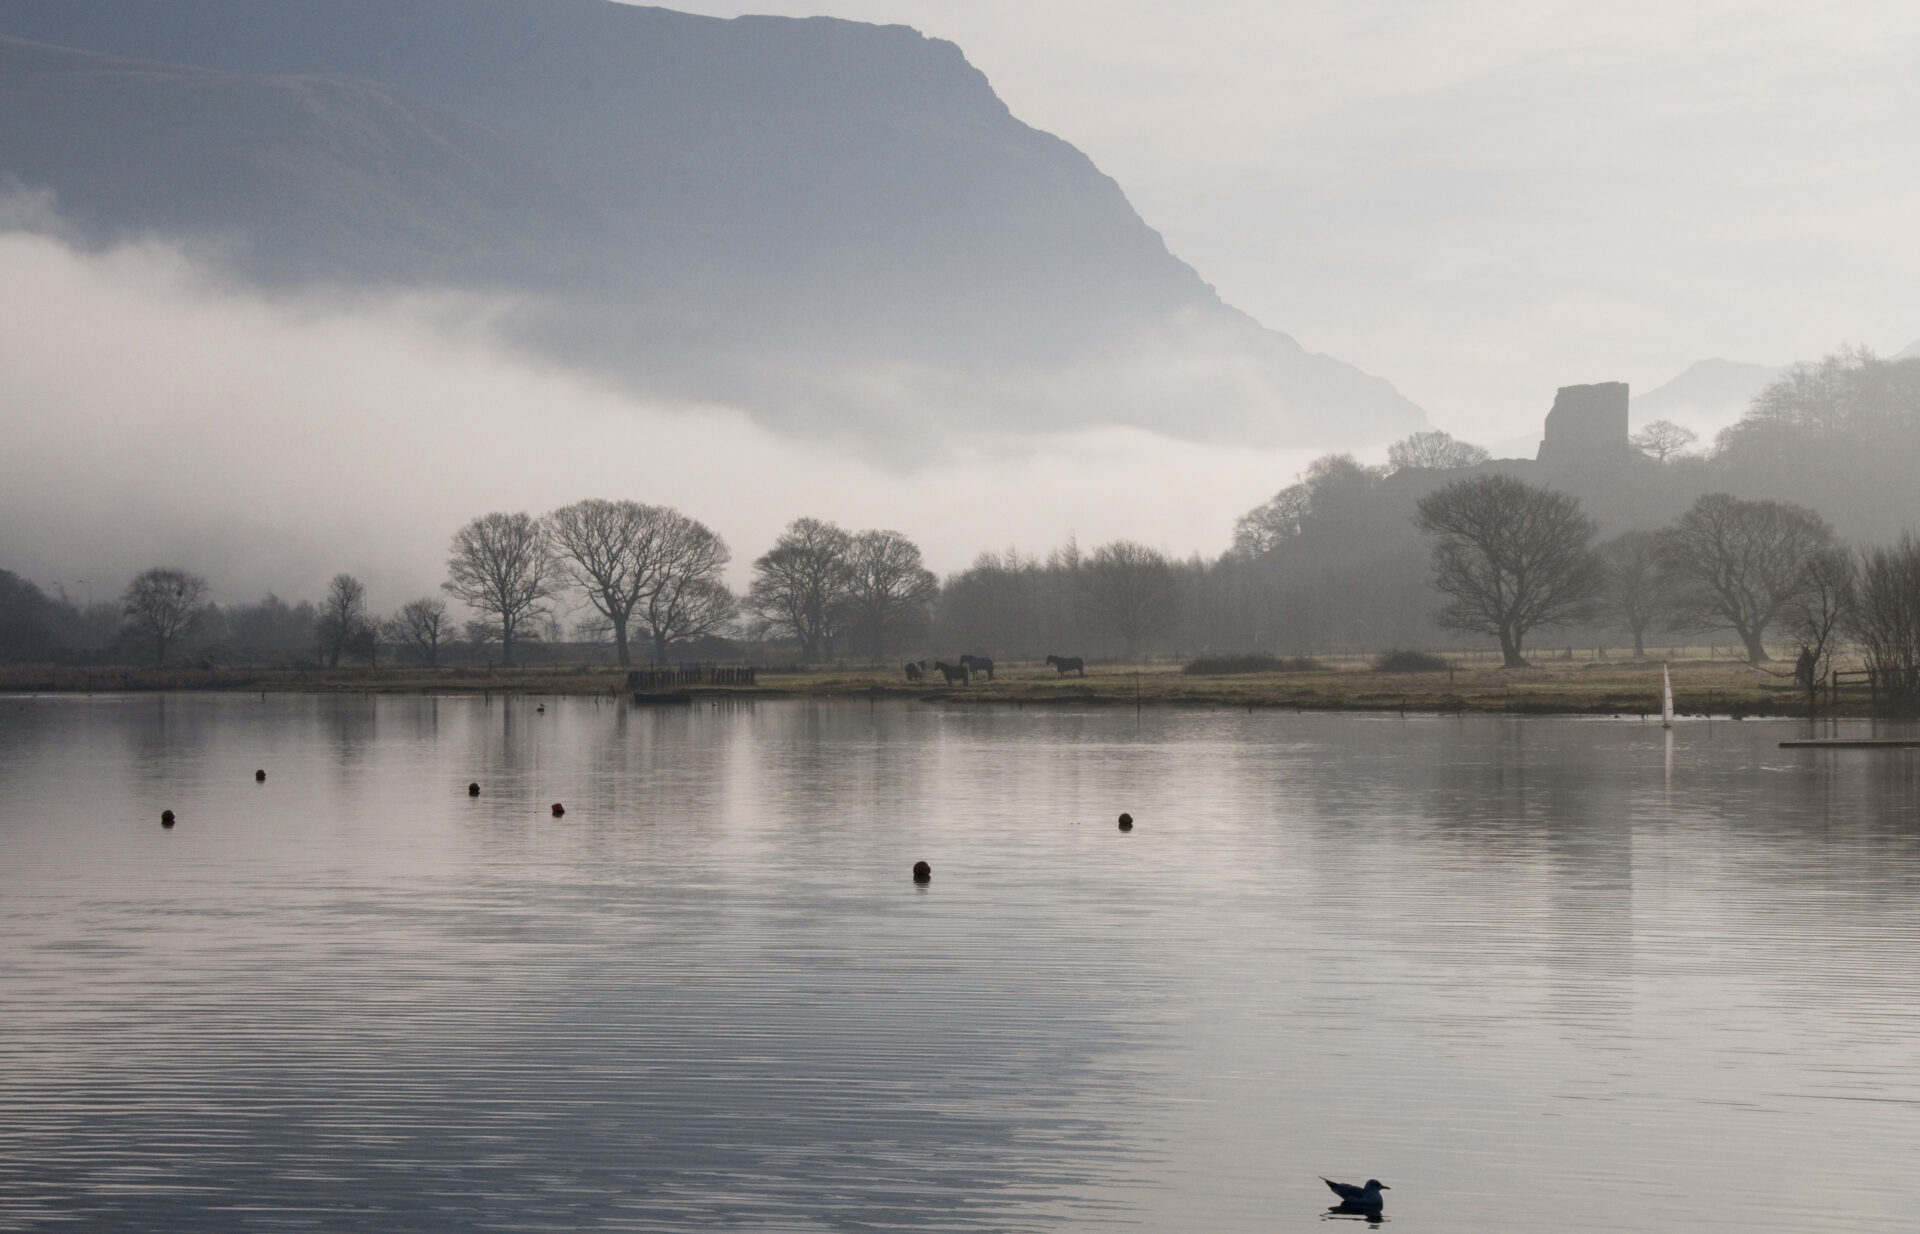 Dolbadarn Castle and Lake Padarn in the mist in Llanberis North Wales